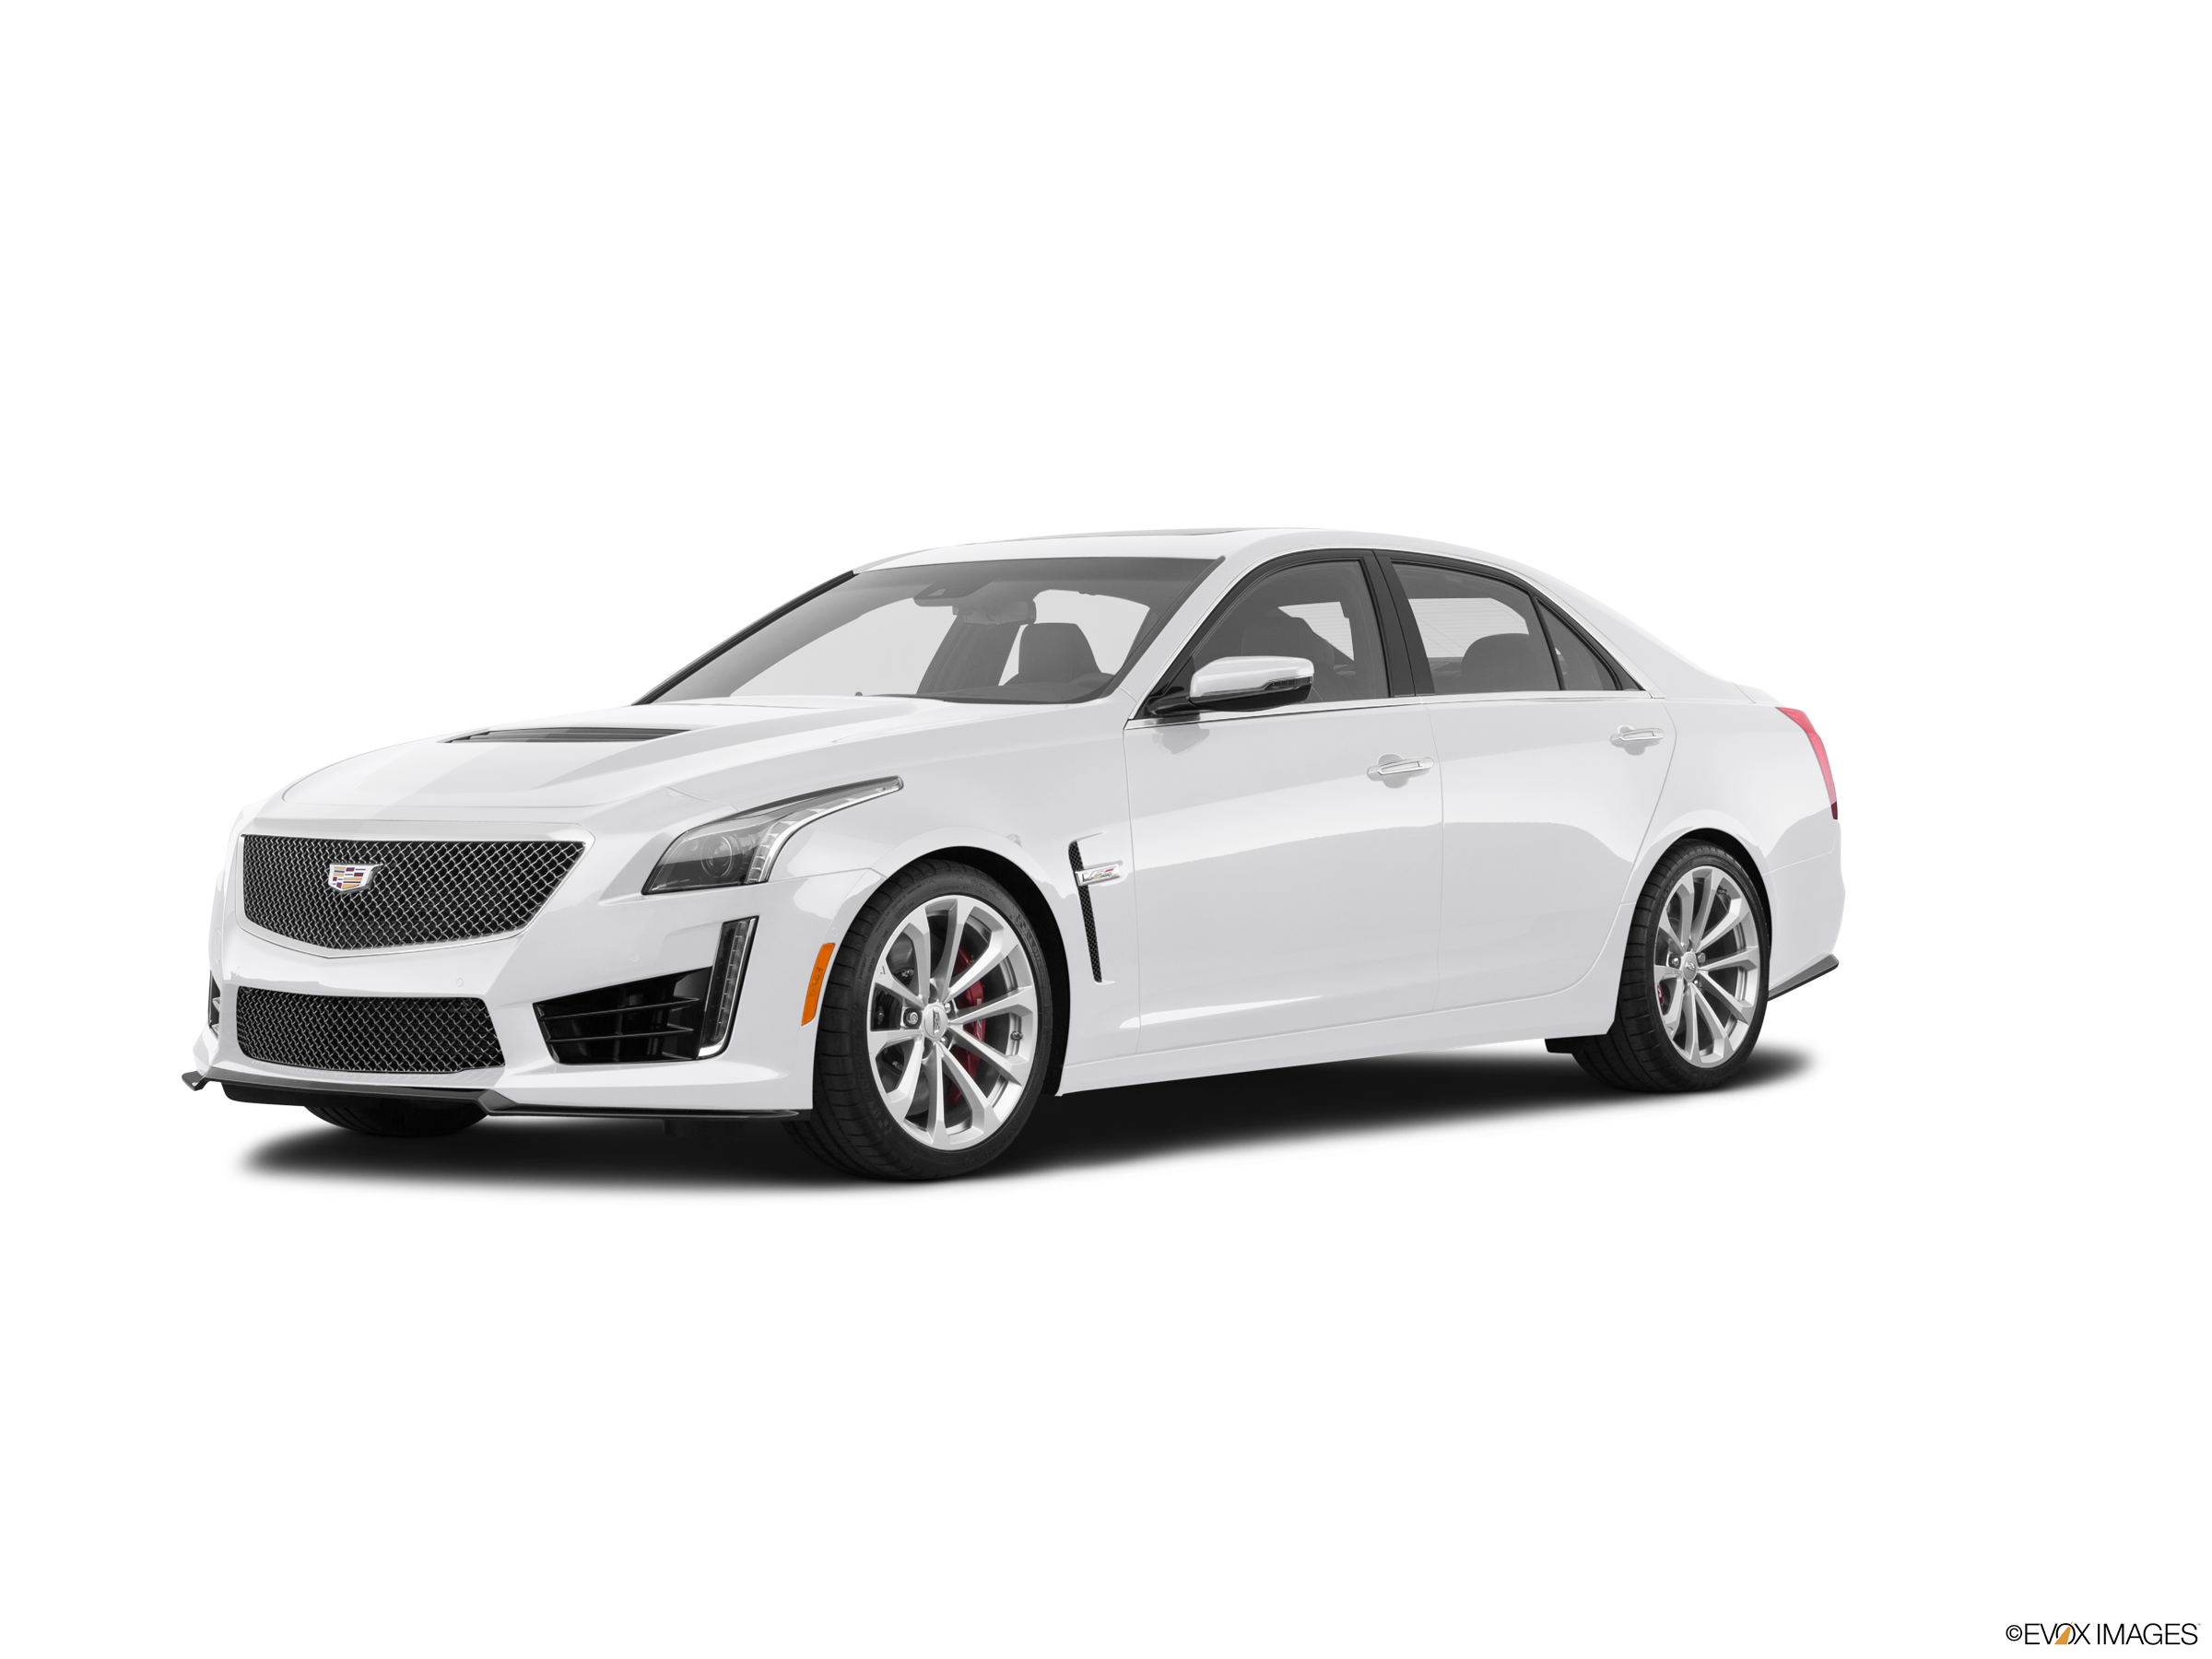 Highest Horsepower Luxury Vehicles of 2019 - 2019 Cadillac CTS-V